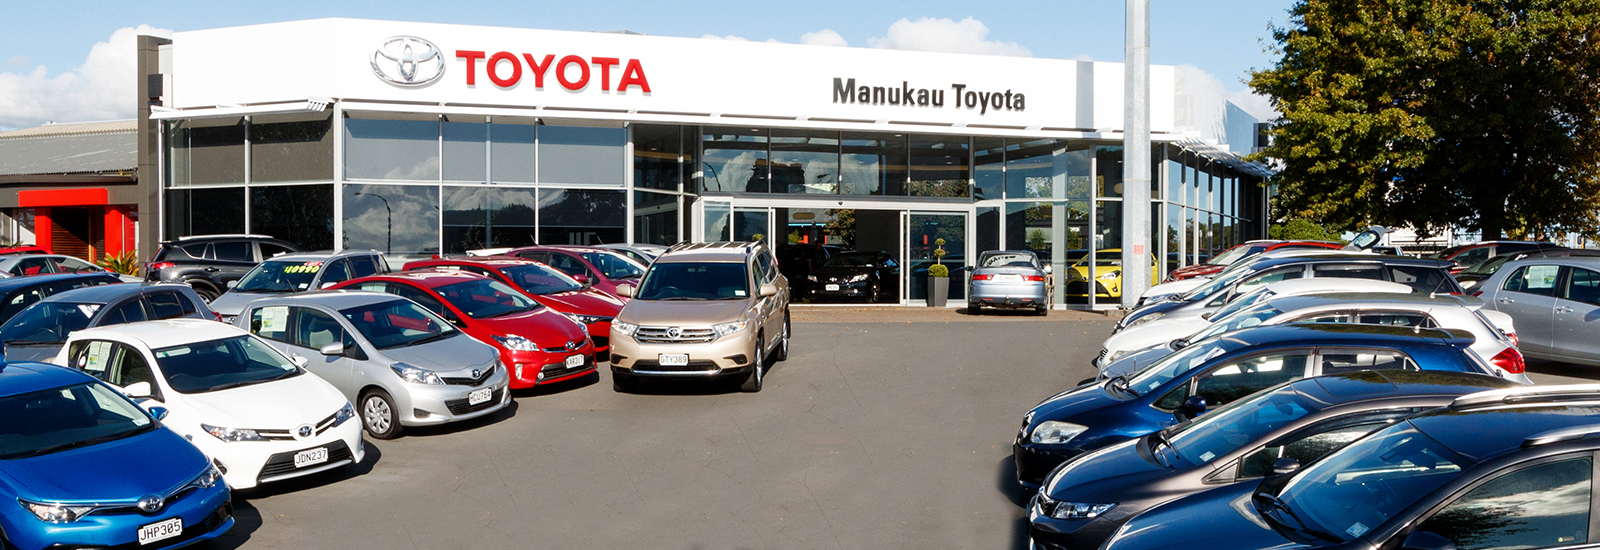 manukau-dealership-hero-1600x550